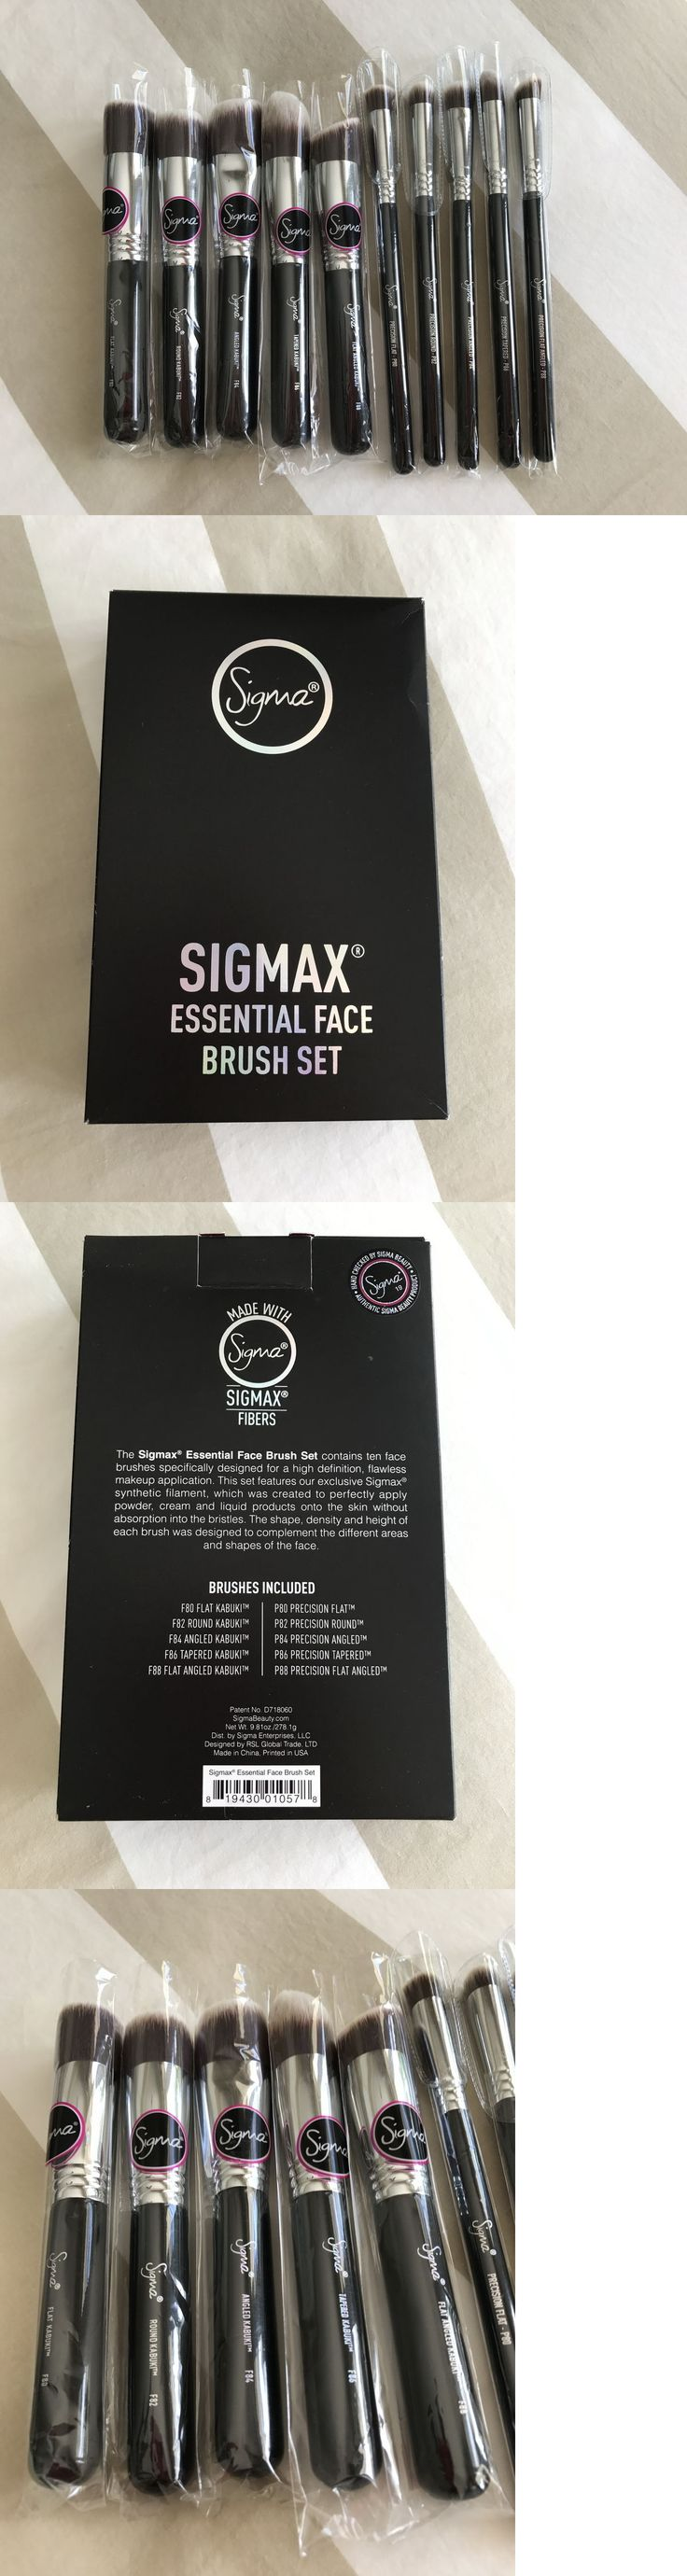 health and beauty: New In Box Sigma Sigmax Essential Face Brush Set Kabuki Precision Kit 10 Brushes -> BUY IT NOW ONLY: $119 on eBay!